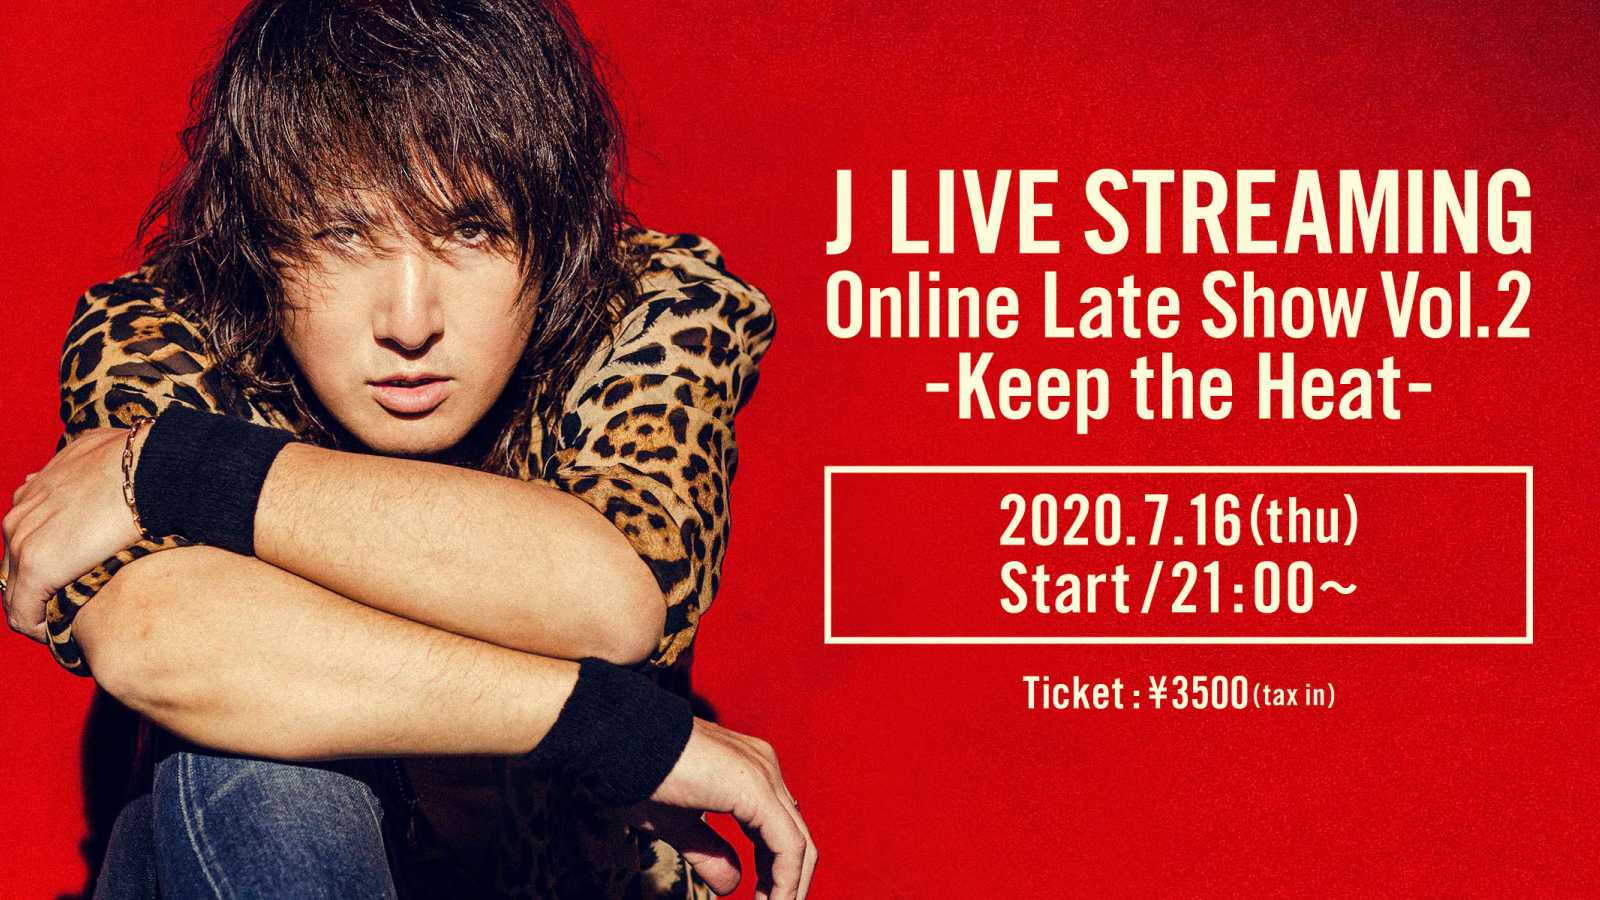 J to Stream Online Late Show Vol.2 on niconico LiVE © J. All rights reserved.